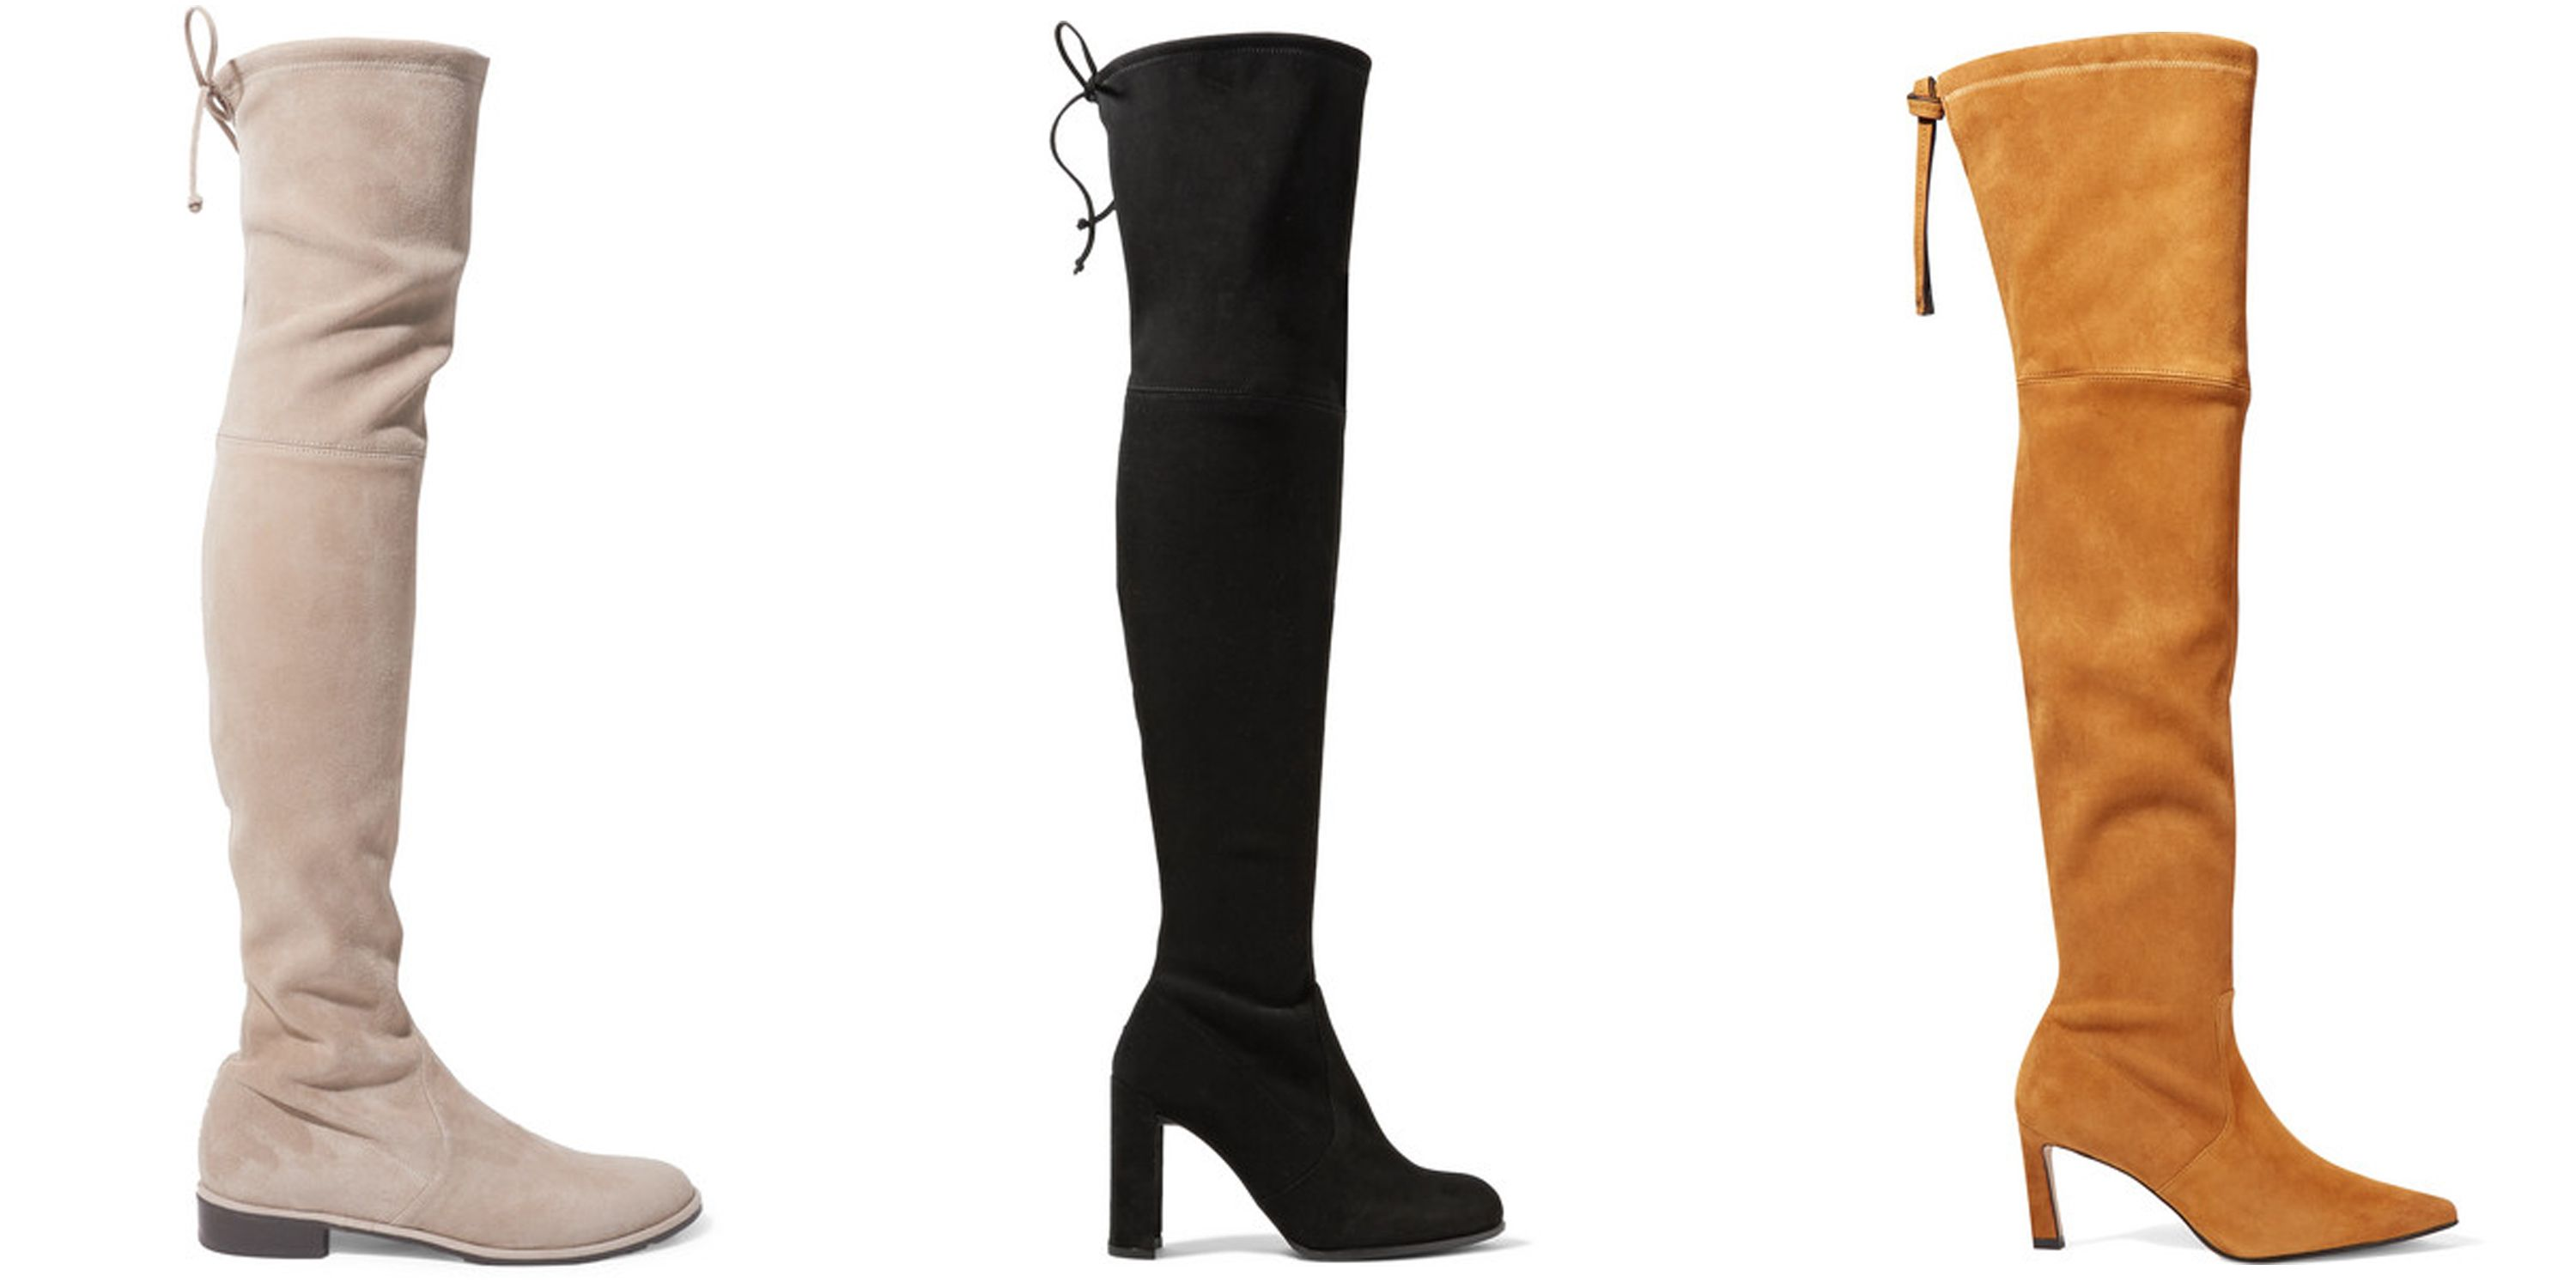 Stuart Weitzman's Over-the-Knee Boots Are 50 Percent Off Right Now